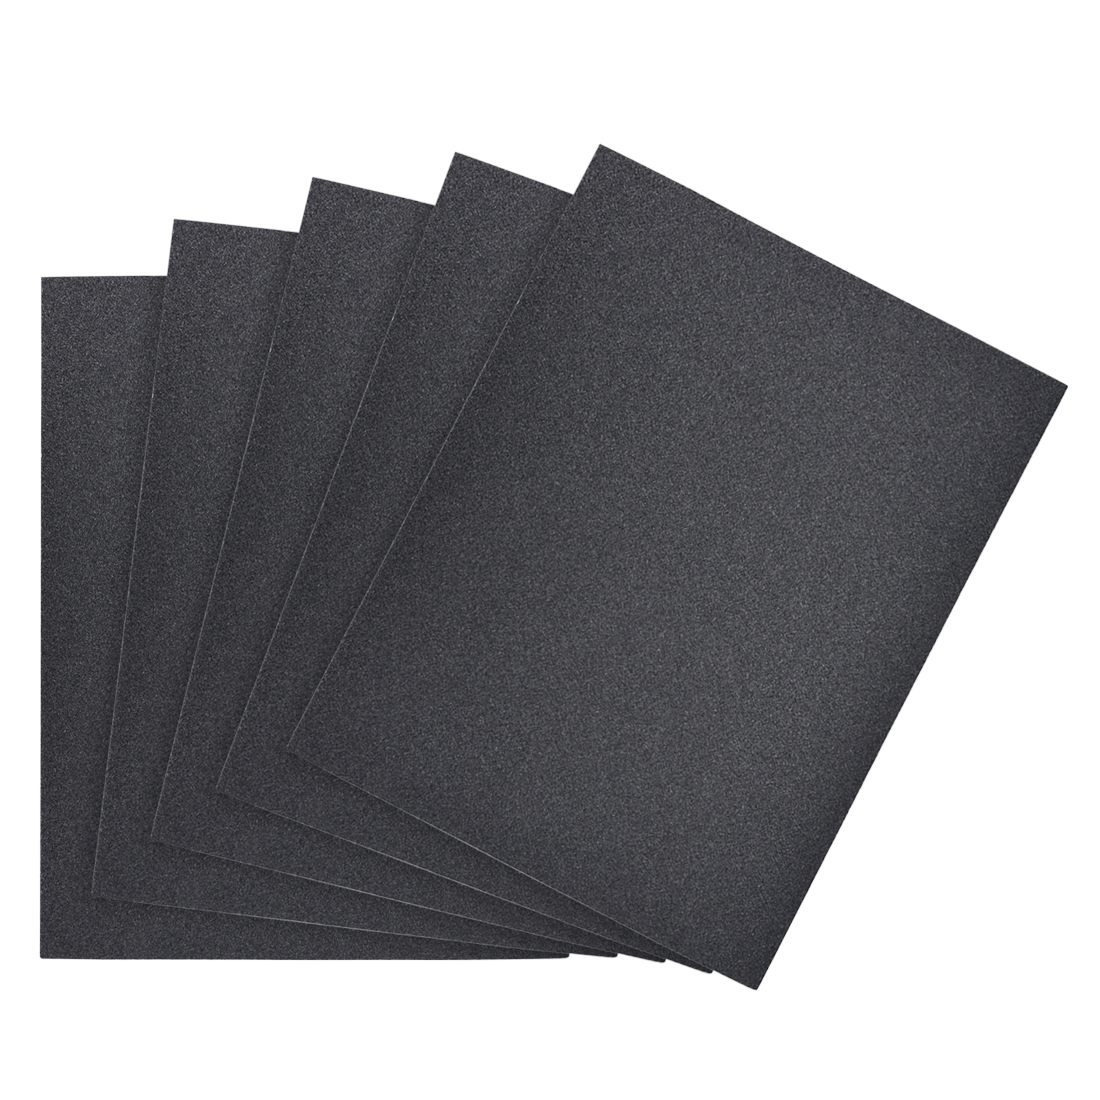 Waterproof Sandpaper, Wet Dry Sand Paper Grit of 120, 11 x 9inch 5pcs